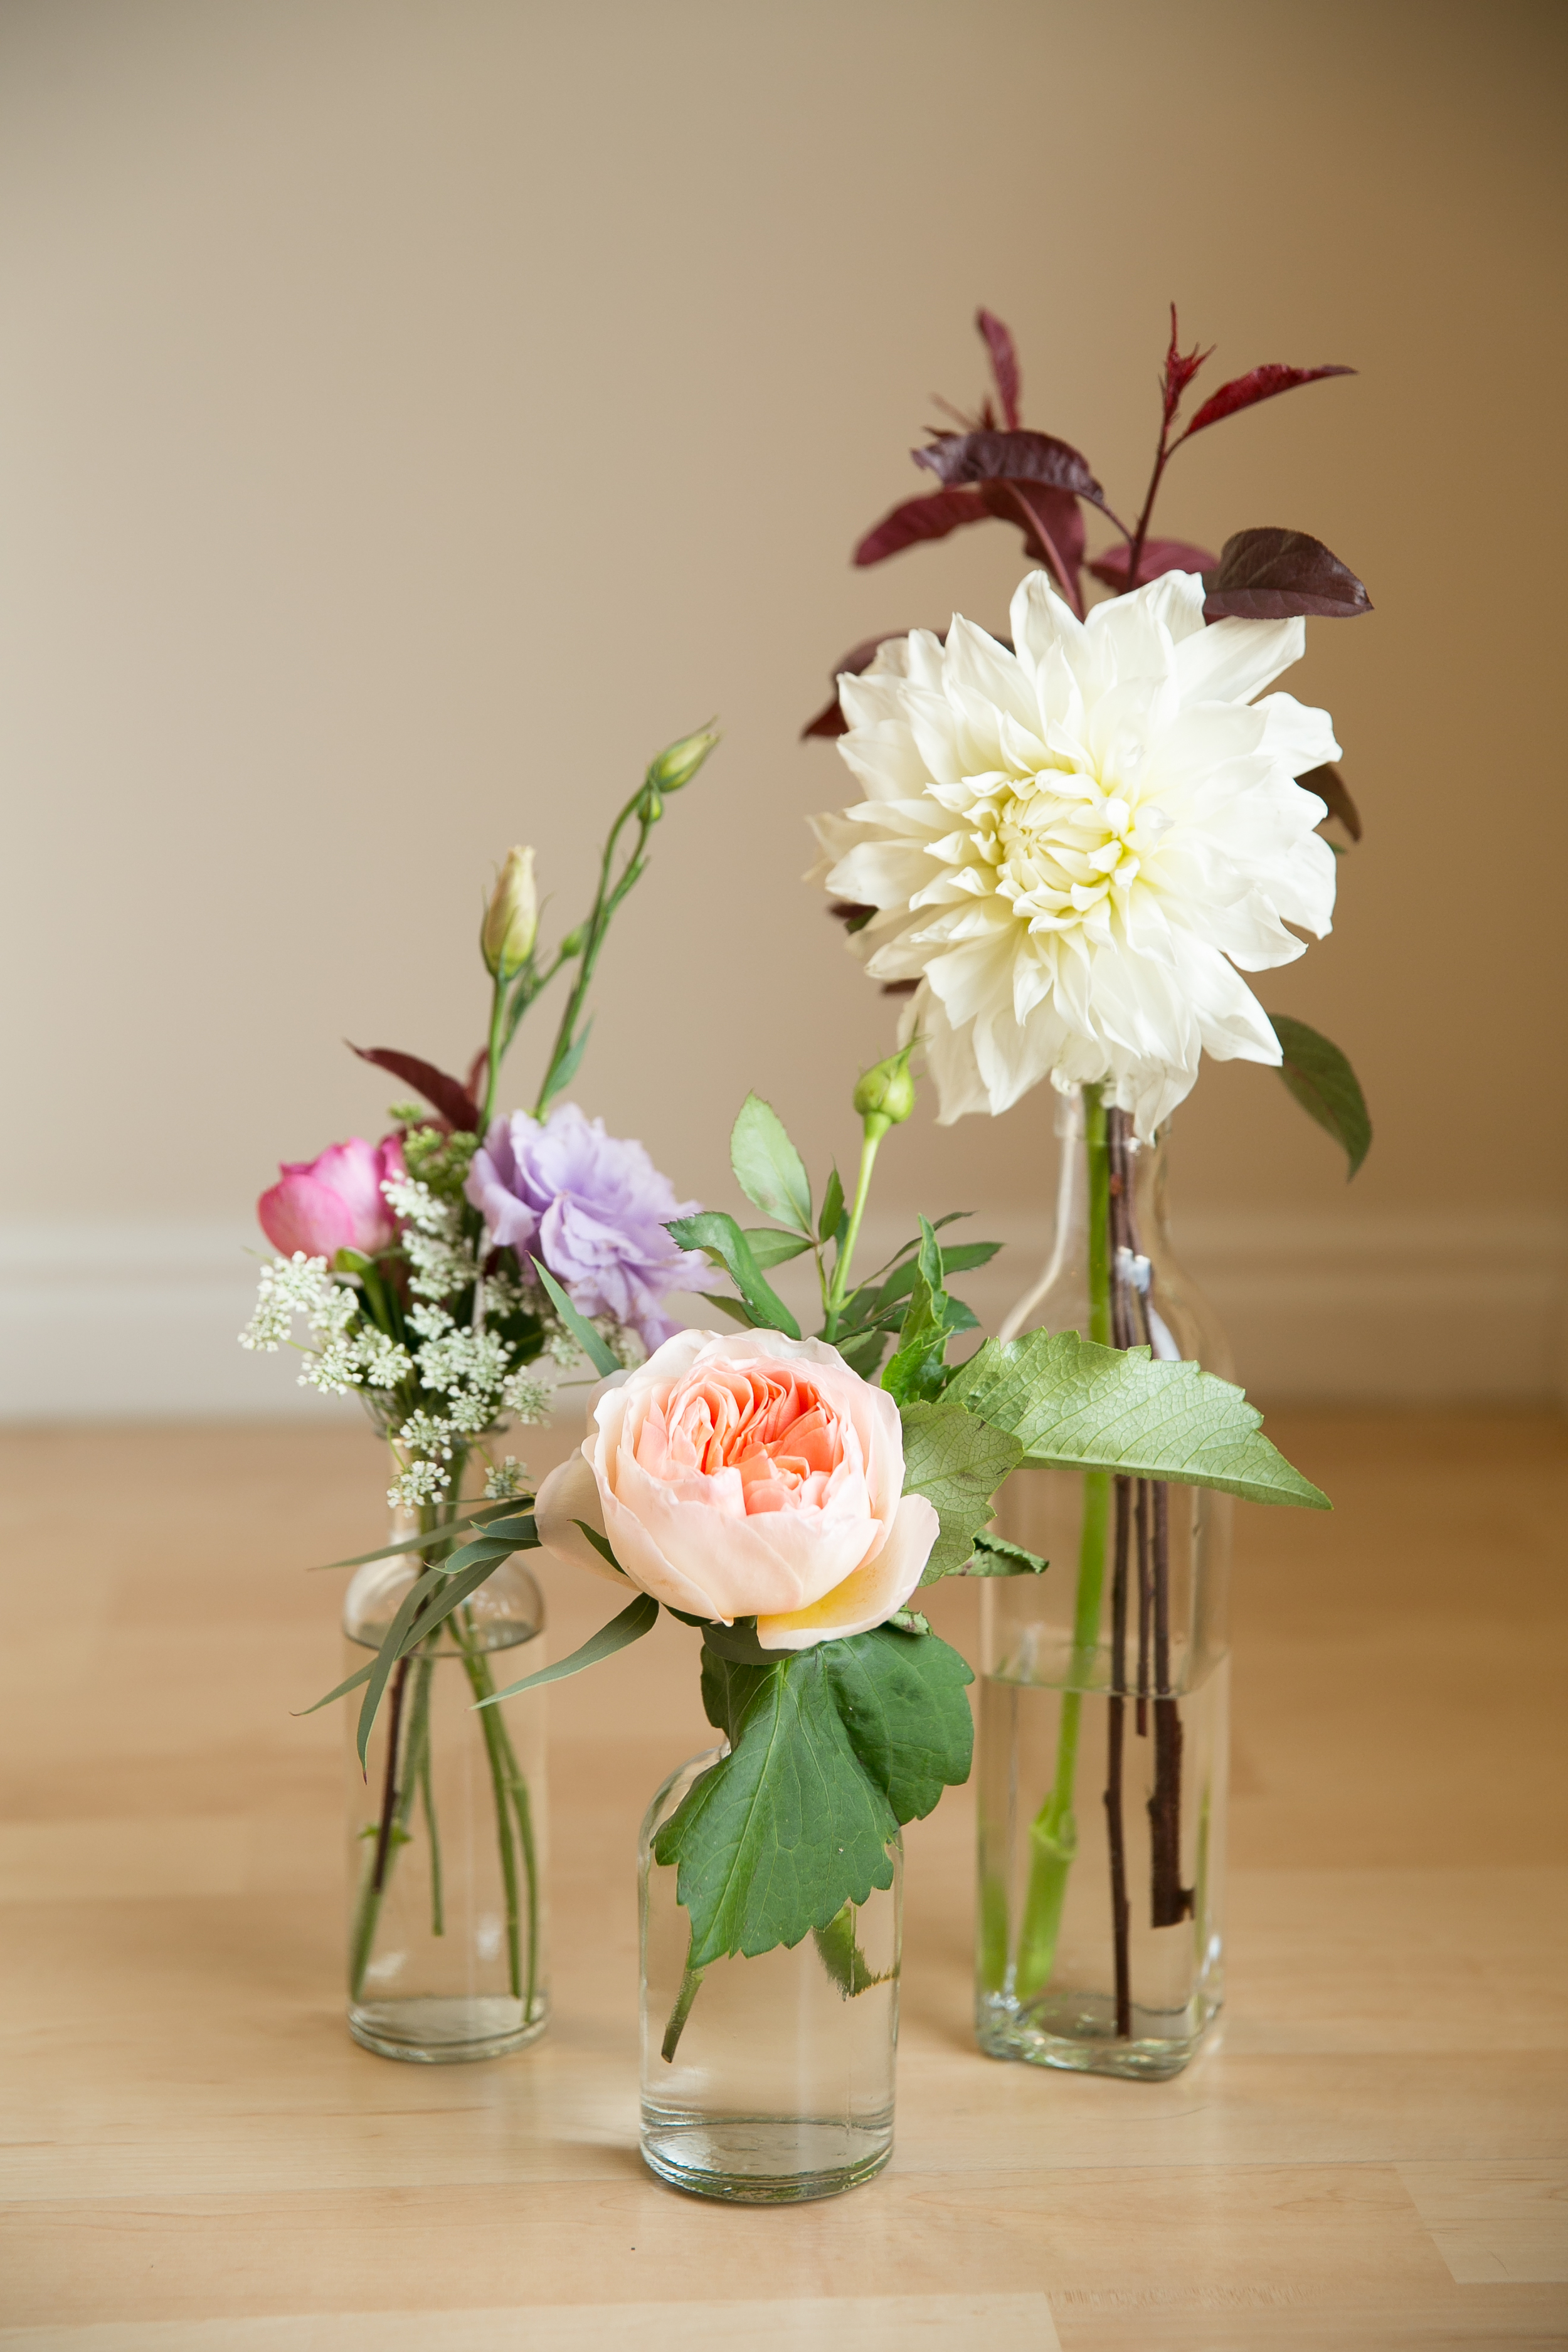 Garden bouquet by Blushing Rose Floral